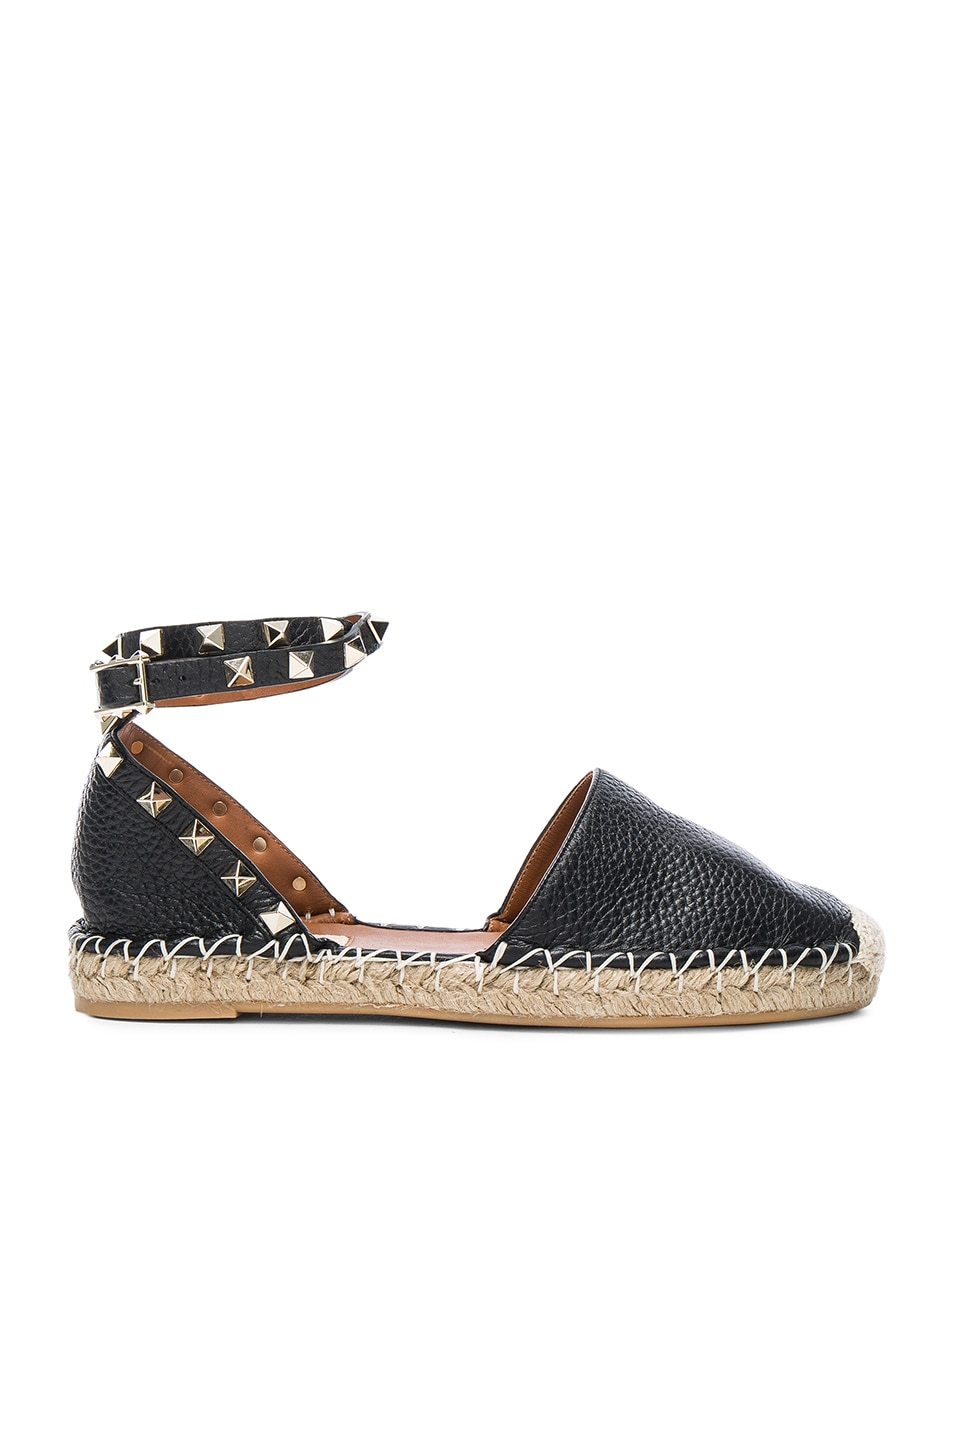 Image 1 of Valentino Rockstud Double Flat Leather Espadrilles in Black